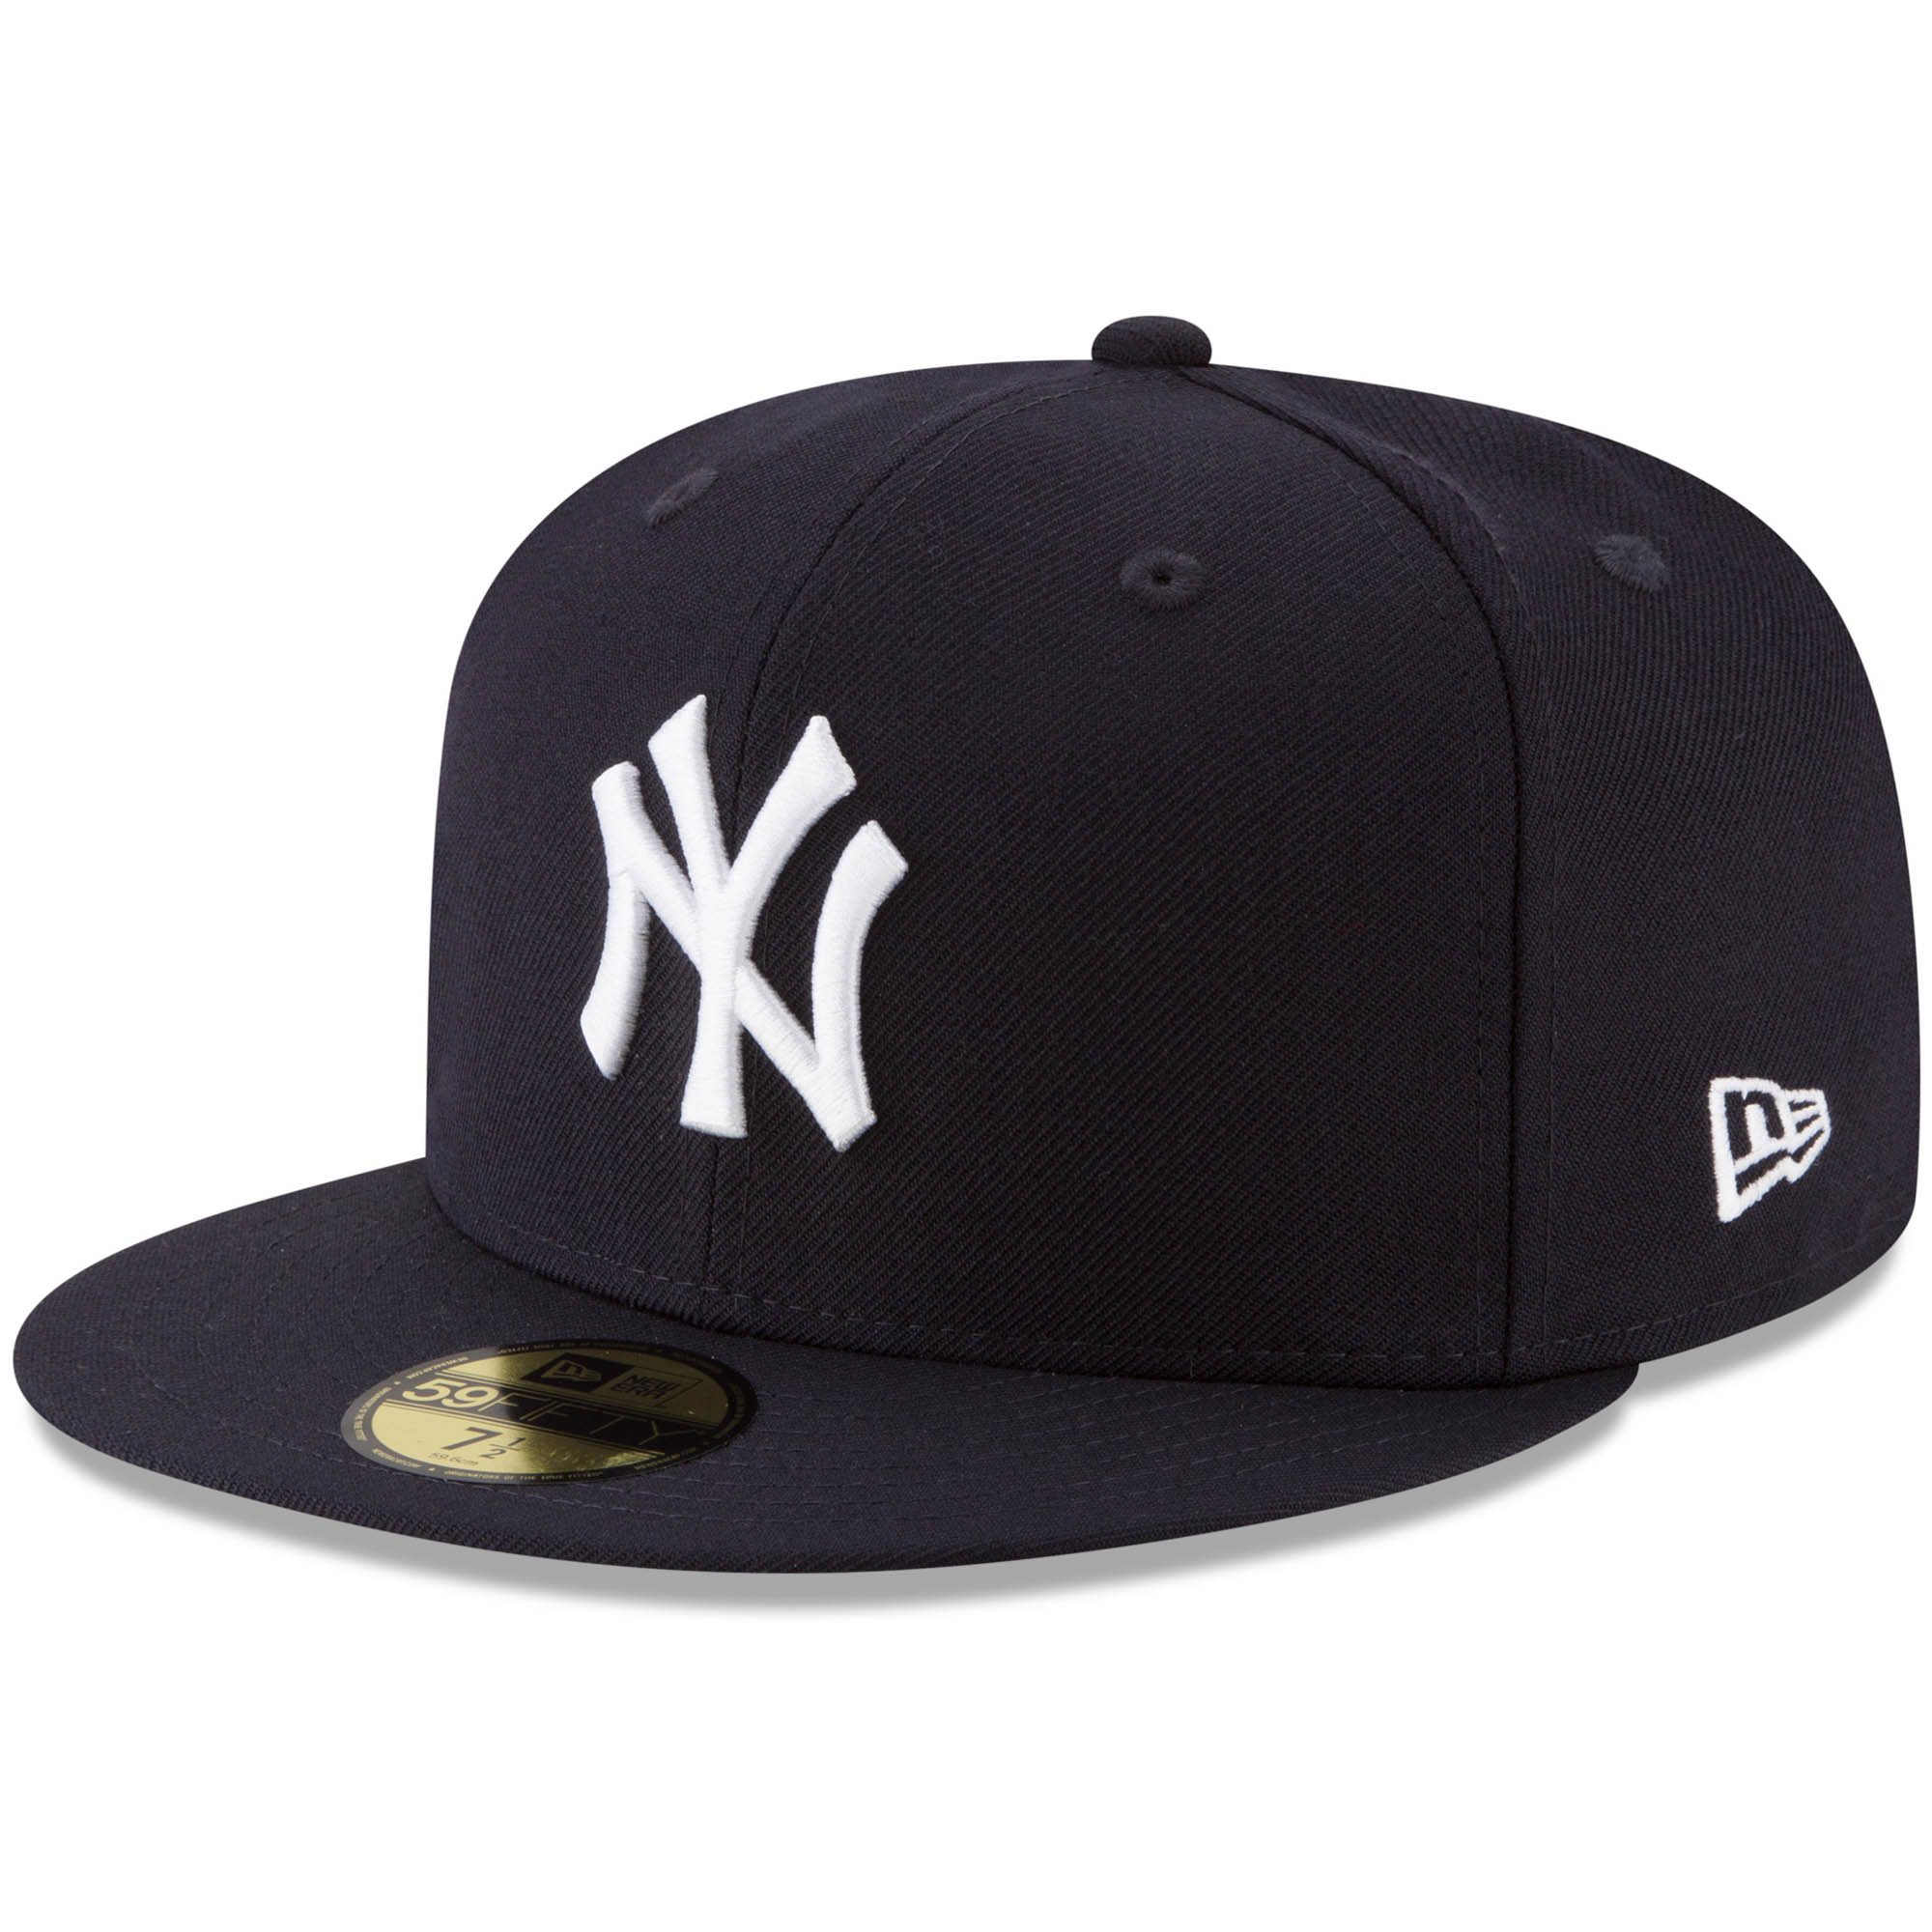 19cd79d67c98da New York Yankees New Era Cooperstown Collection 2009 World Series Side  Patch 59FIFTY Fitted Hat - Navy - Walmart.com